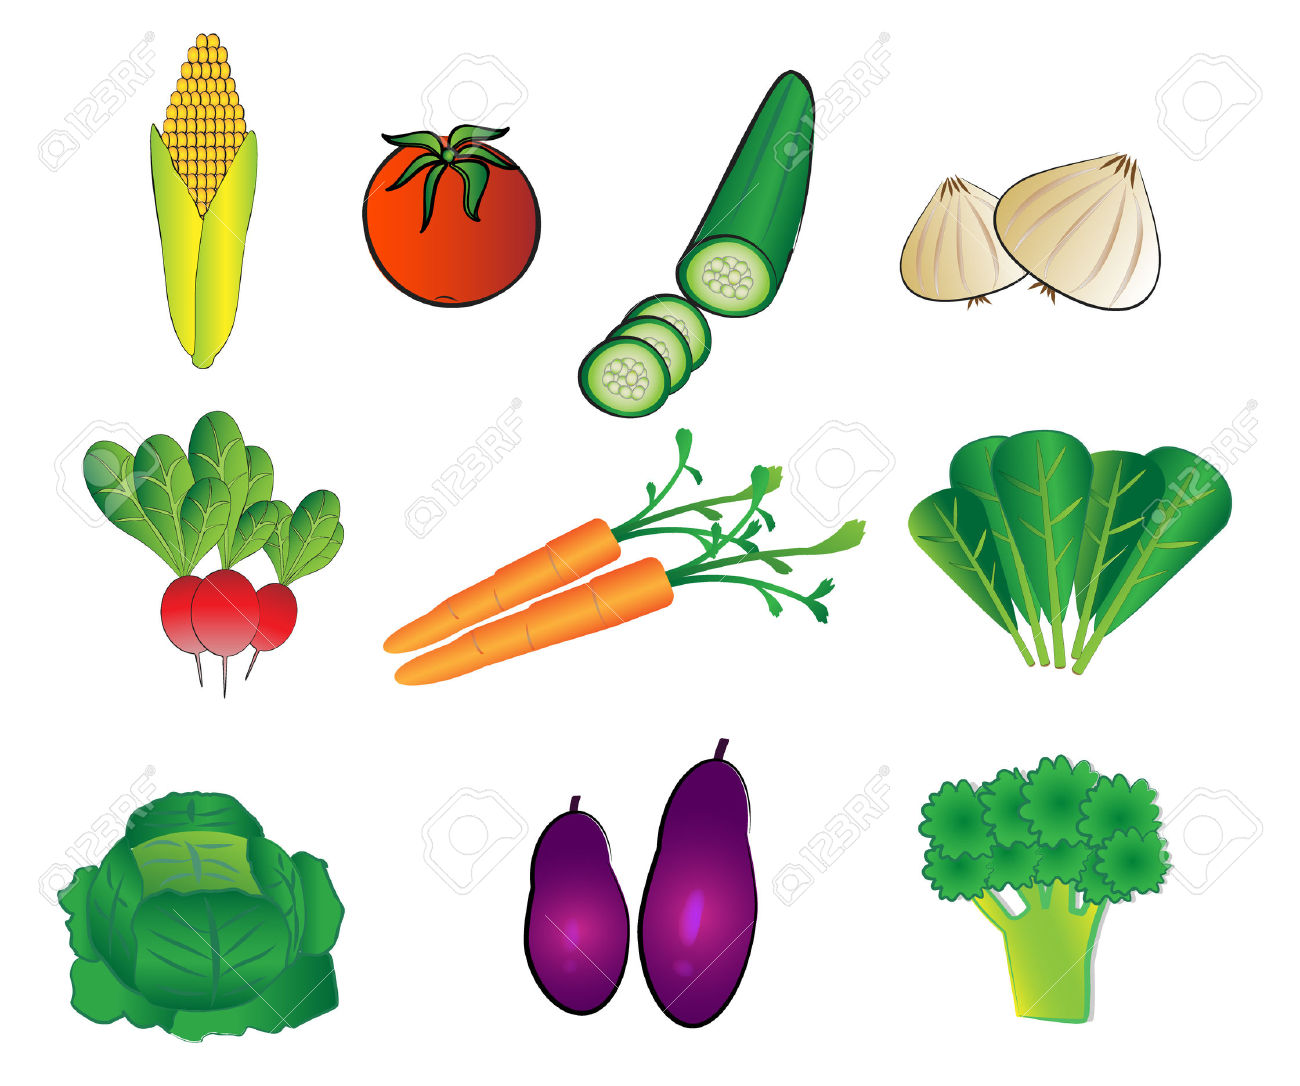 Vegetables Illustrations Royalty Free Cliparts, Vectors, And Stock.